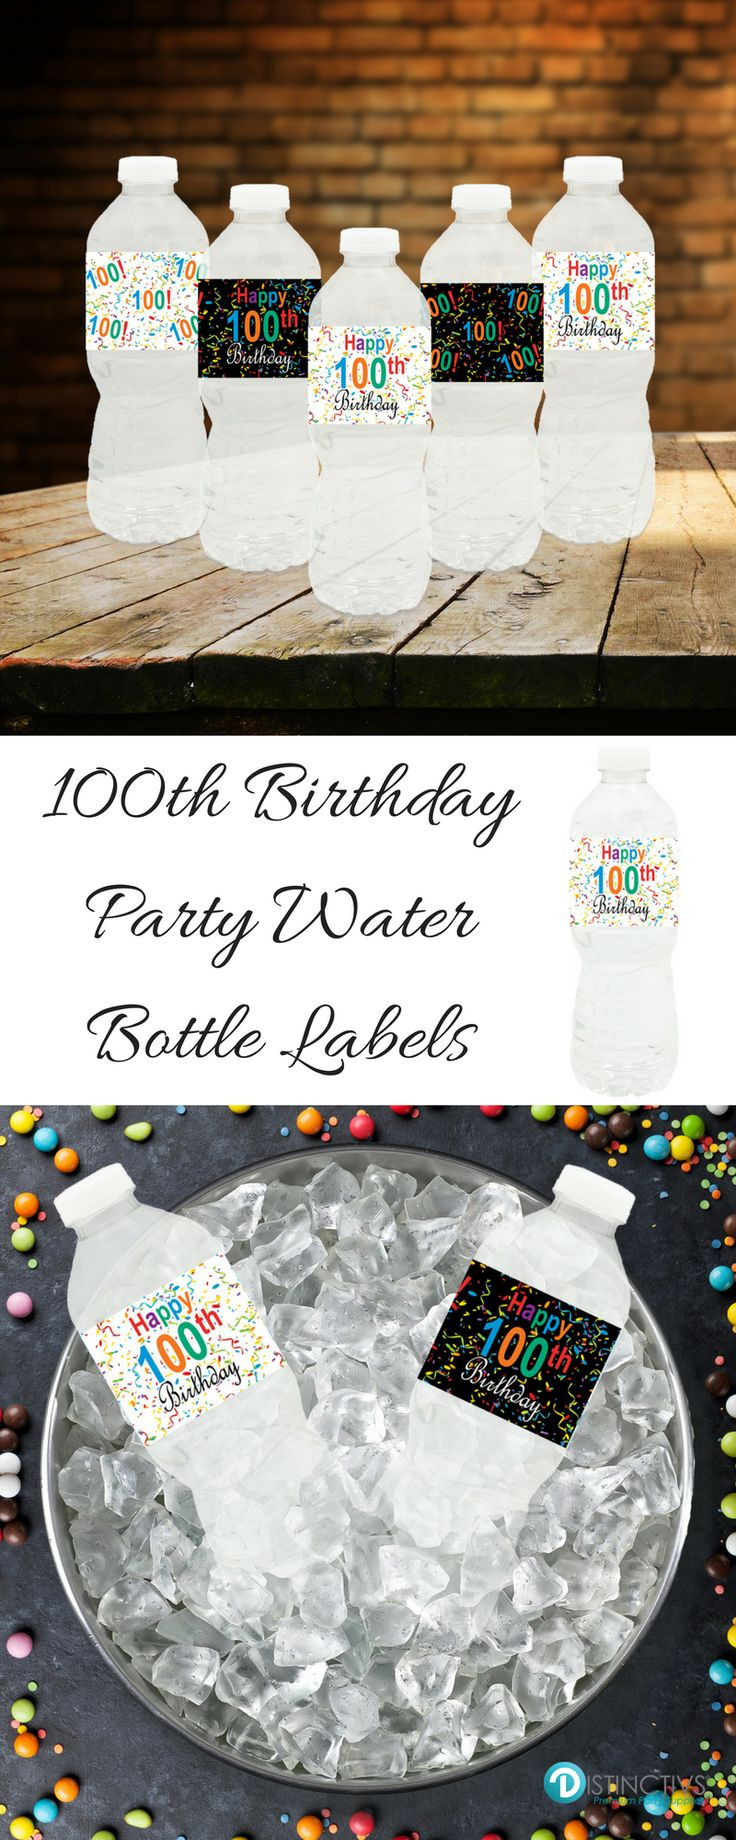 Best ideas about 100th Birthday Ideas . Save or Pin 4257 best images about Birthdays on Pinterest Now.